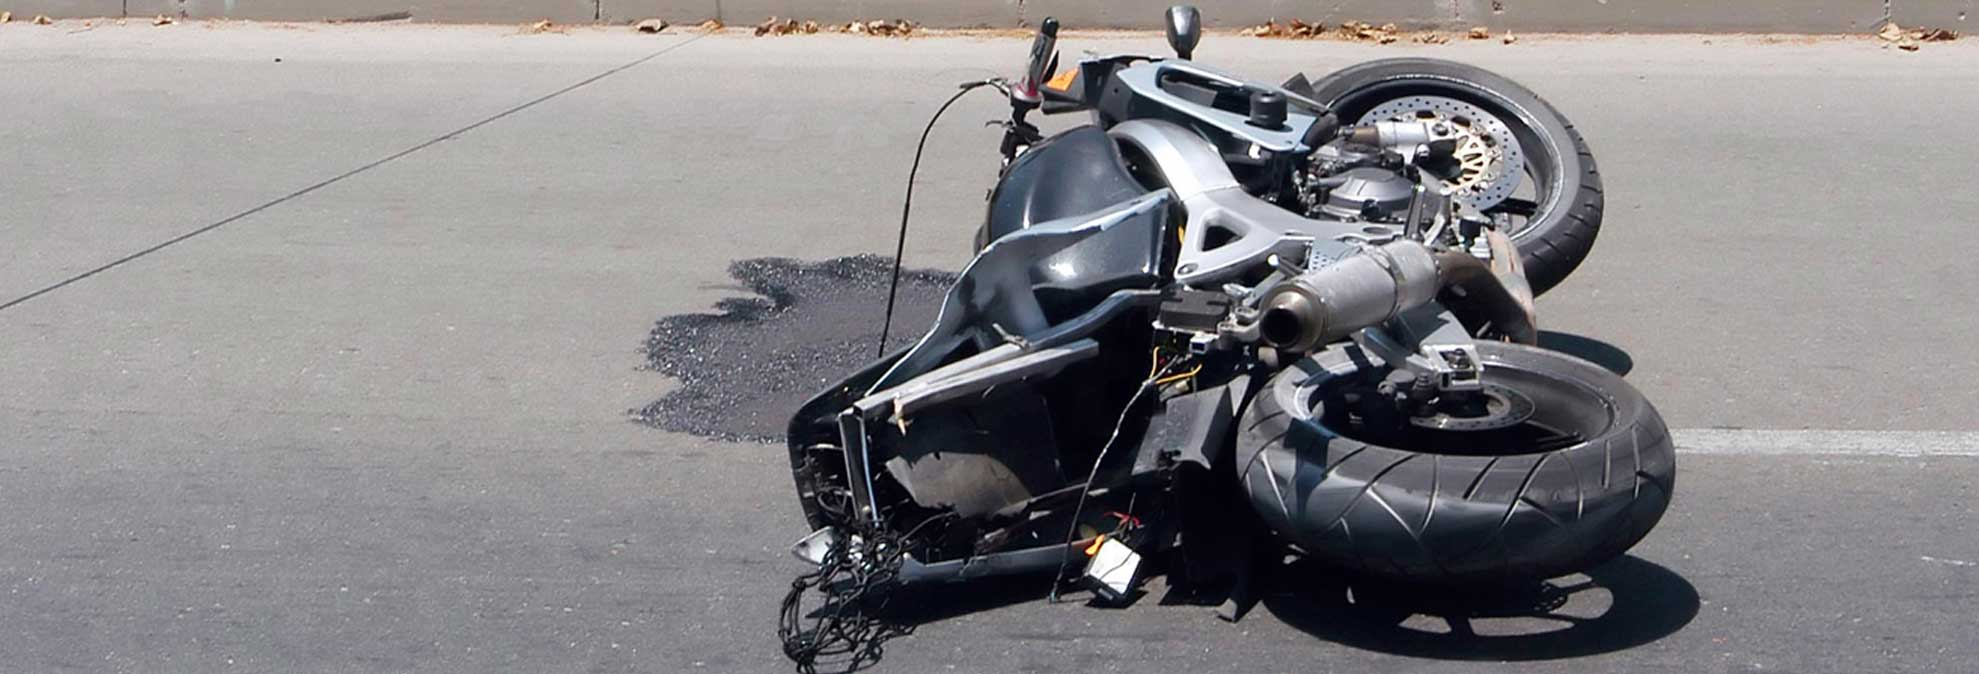 Motorcycle Fatalities Rose 10 Percent In 2015 Consumer